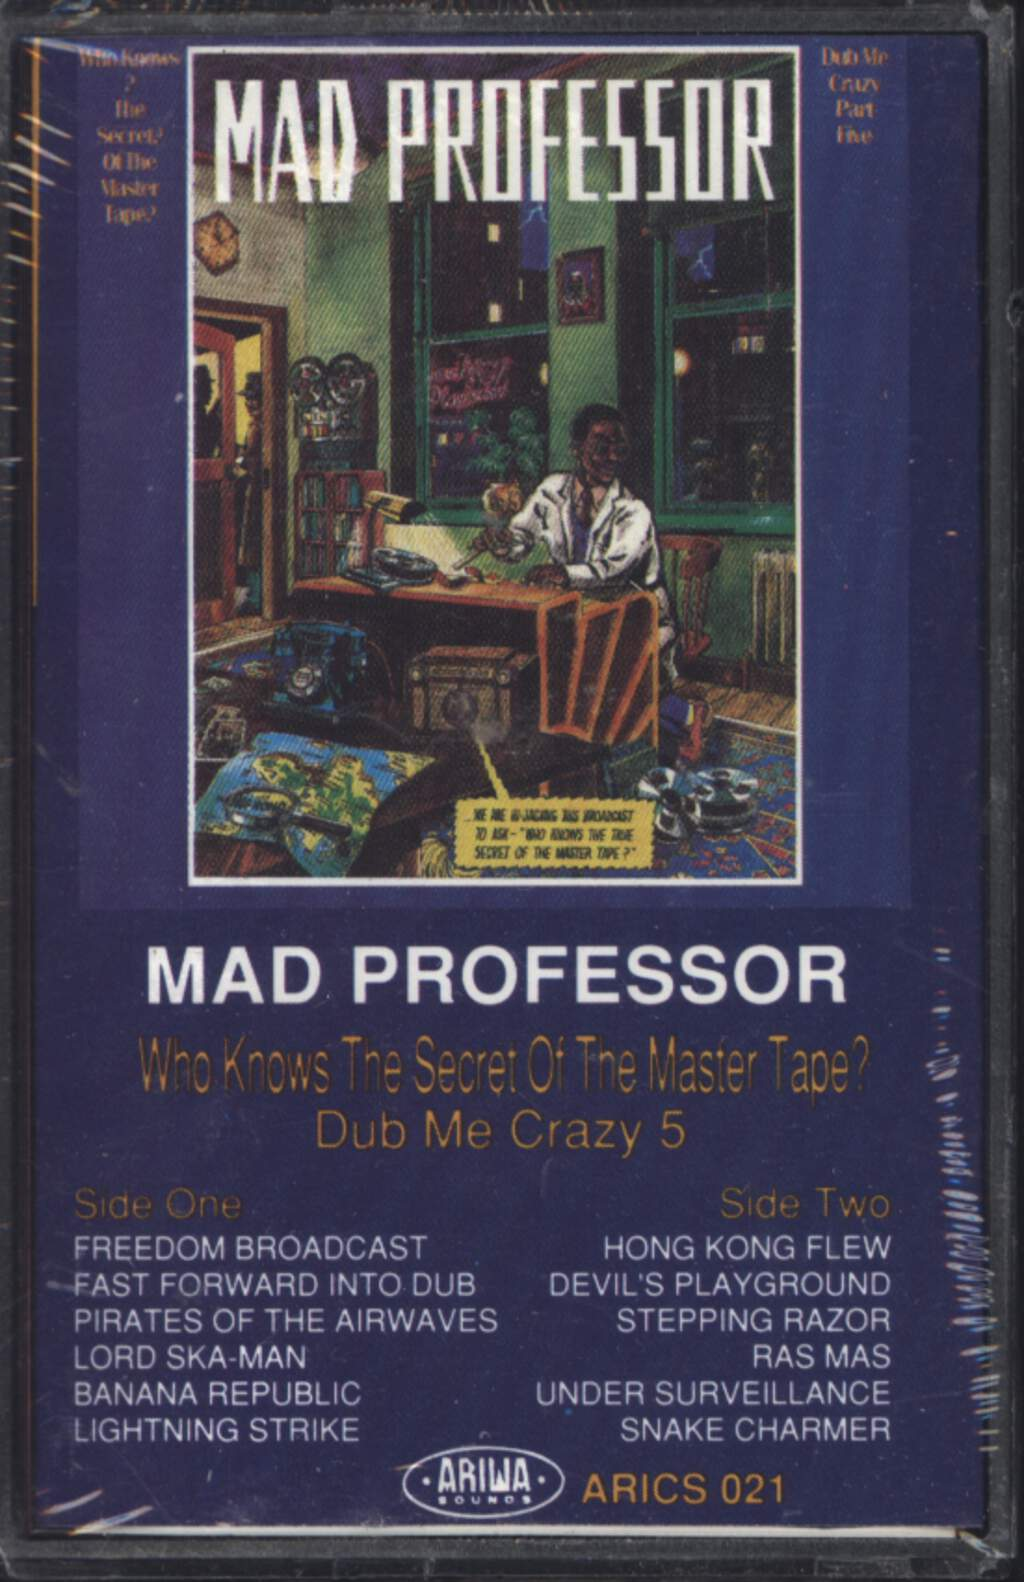 Mad Professor: Dub Me Crazy Part Five: Who Knows The Secret Of The Master Tape?, Compact Cassette